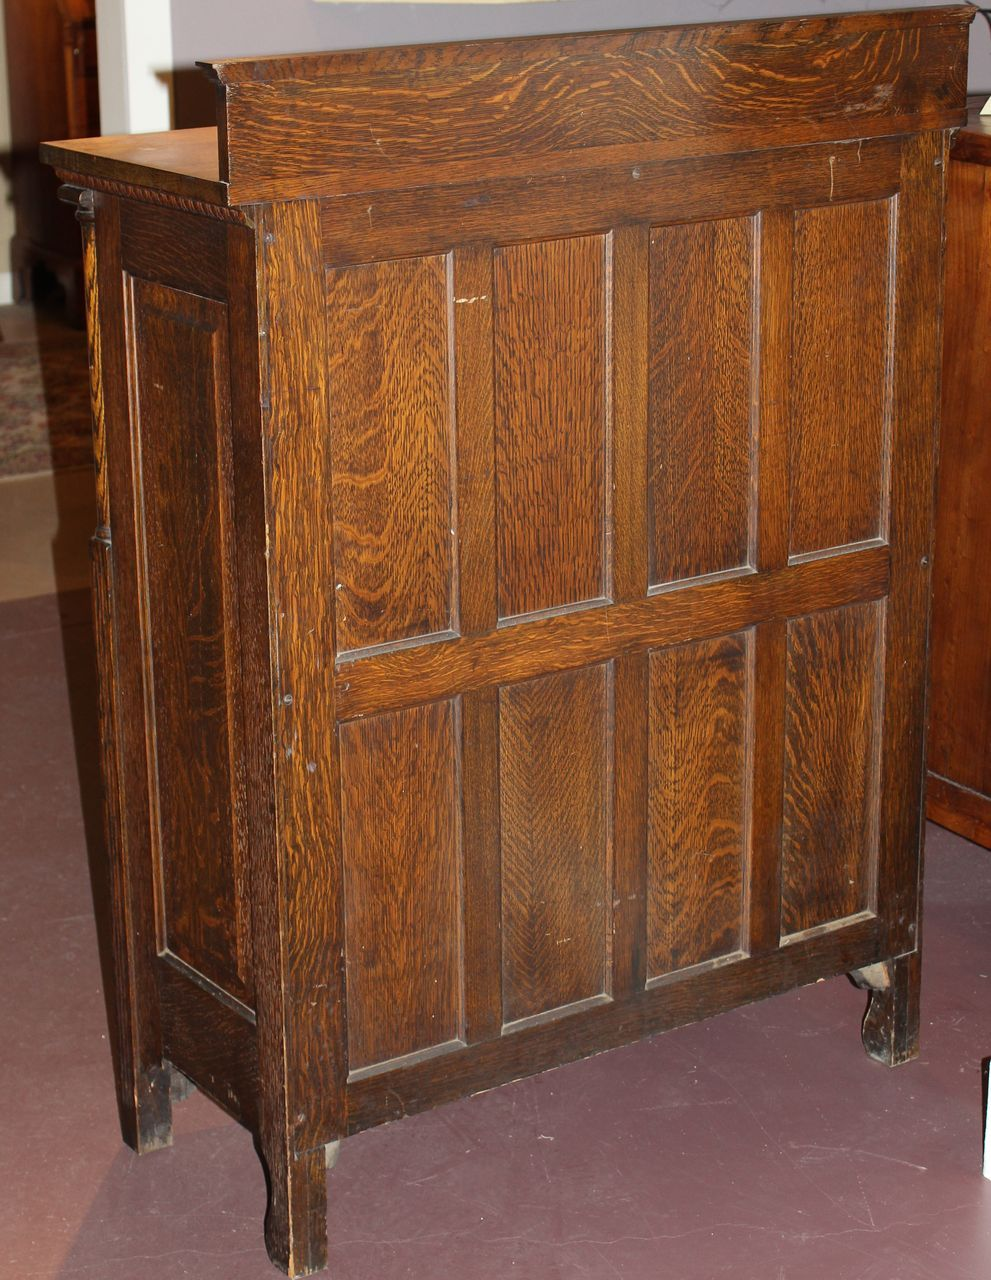 Early 20th C American Cabinet Company Oak Dental Cabinet From